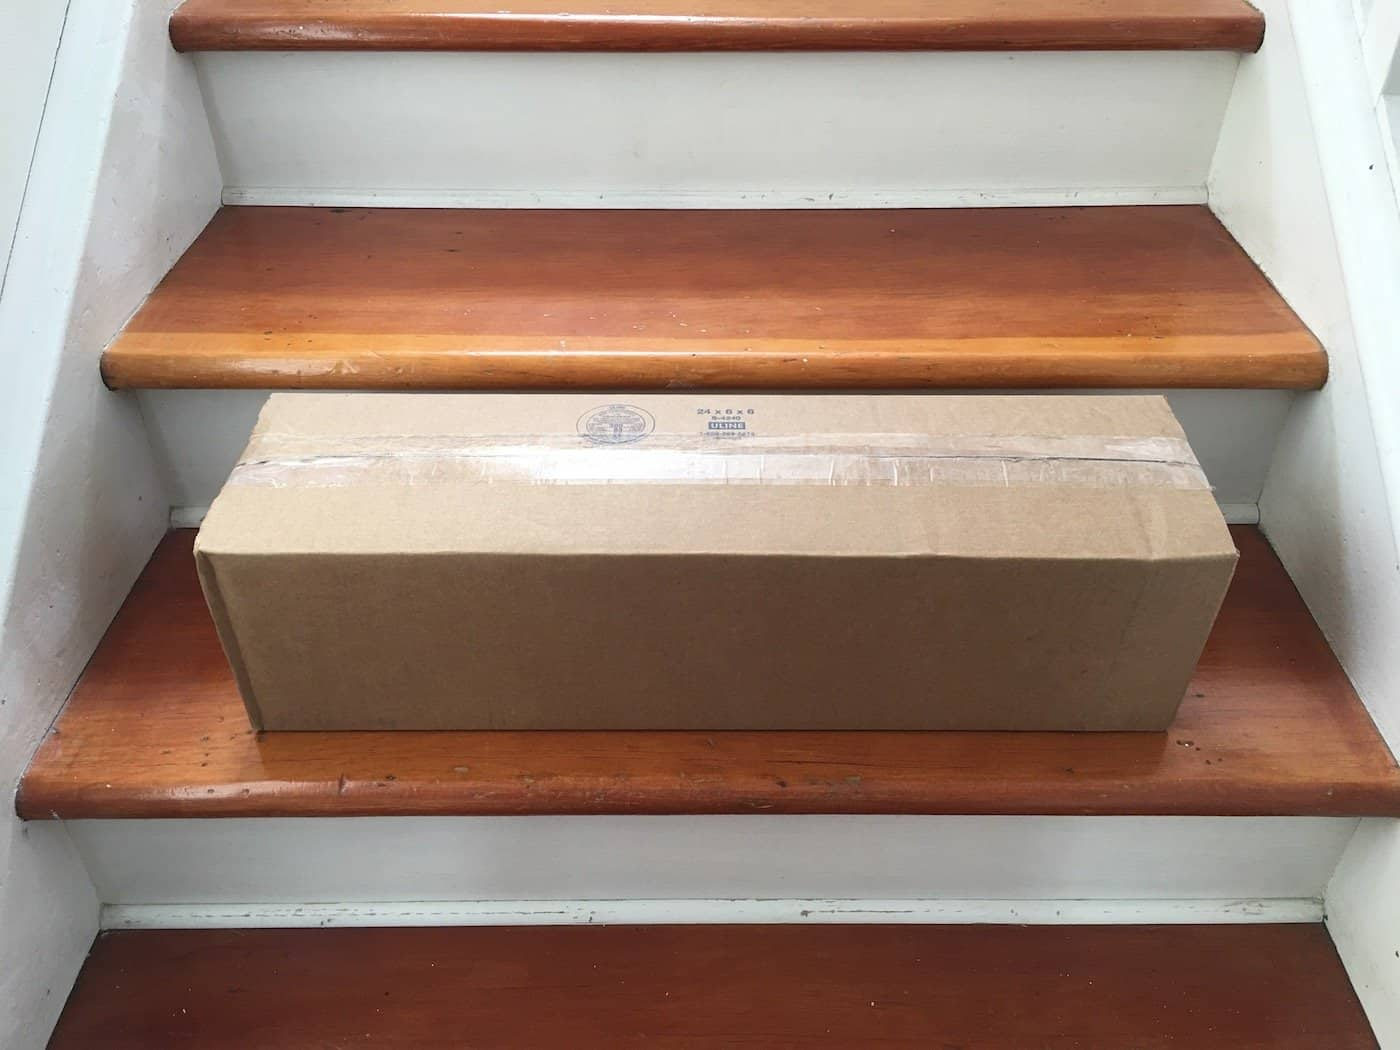 shipping box on stairs full of plants bought online